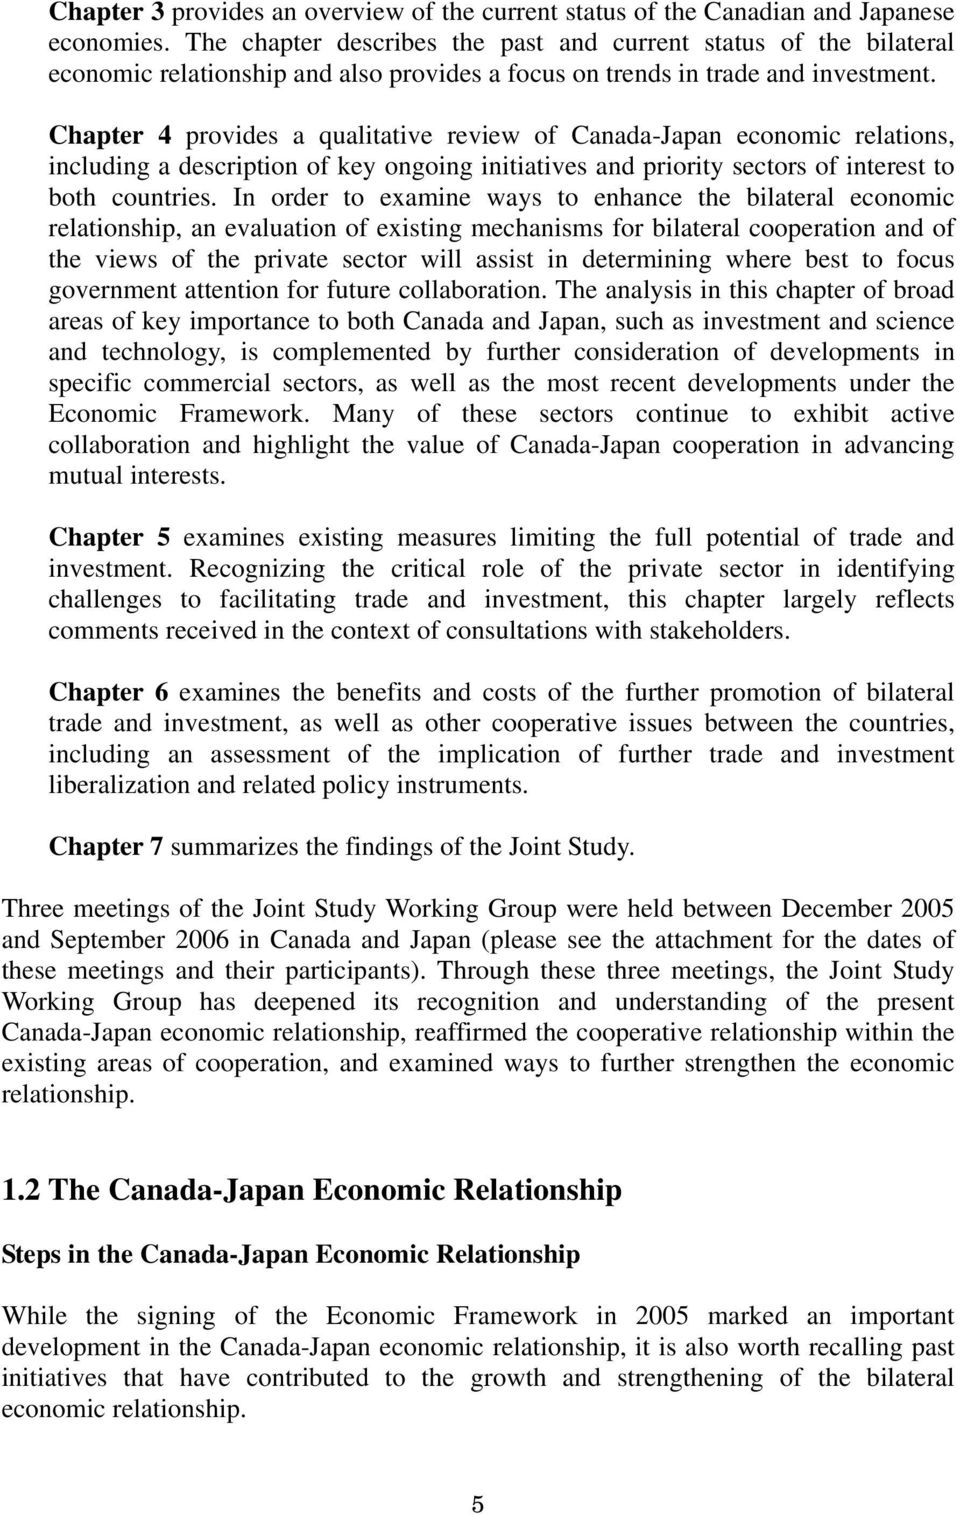 Chapter 4 provides a qualitative review of Canada-Japan economic relations, including a description of key ongoing initiatives and priority sectors of interest to both countries.